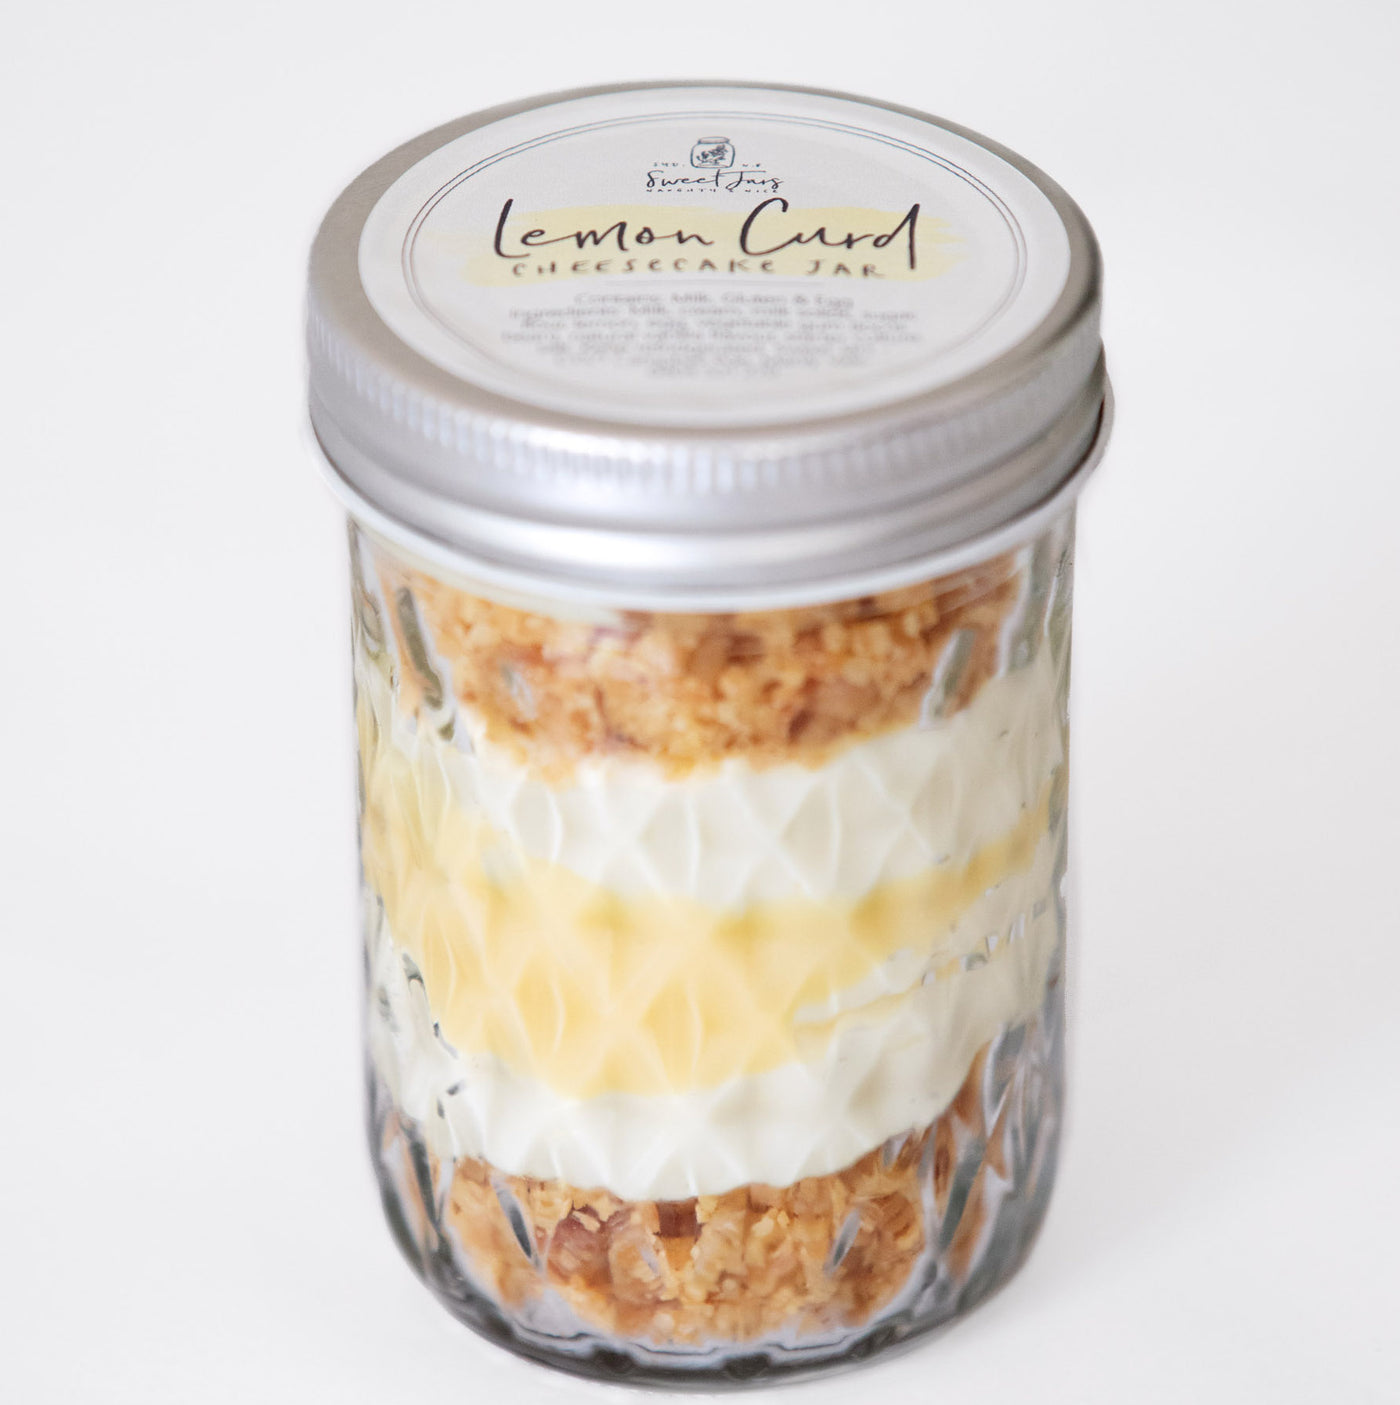 Lemon Curd Cheesecake Jar - Dessert 190g